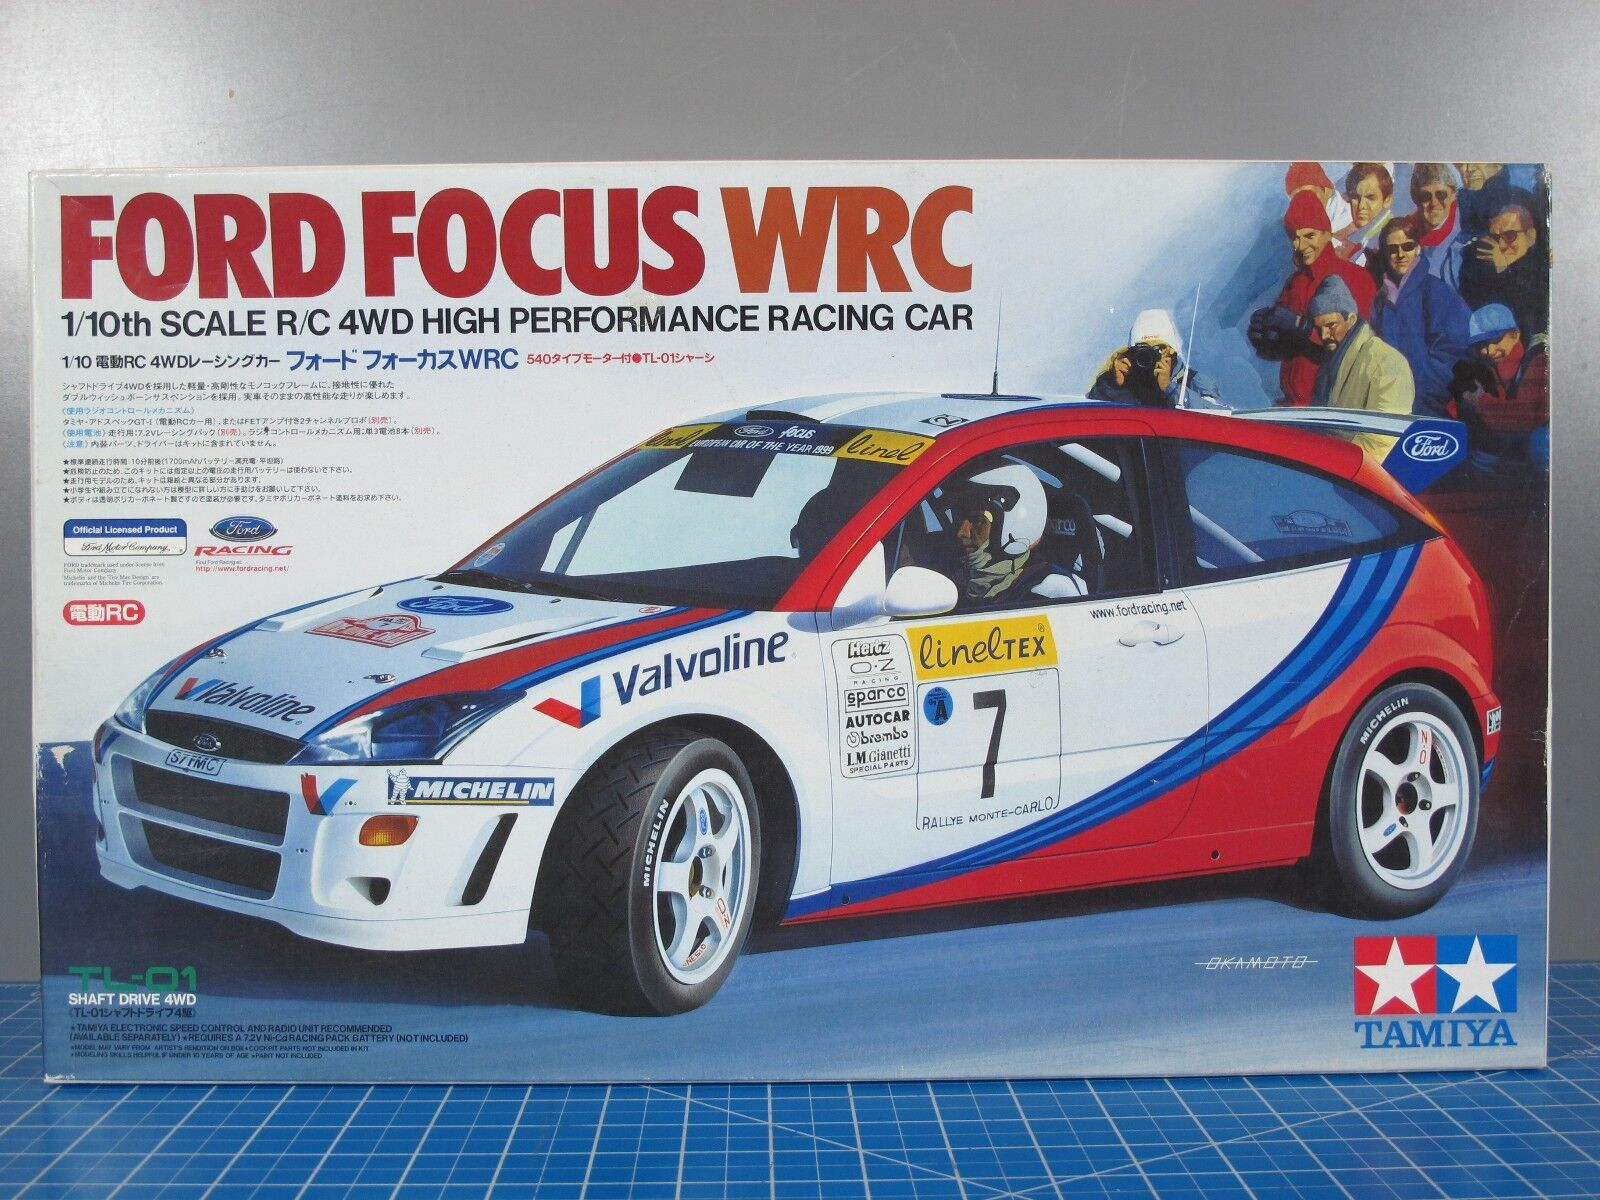 Rare Vintage Tamiya R C 1 10 Ford Focus WRC TL-01 Shaft Drive Chassis  58241 KIT